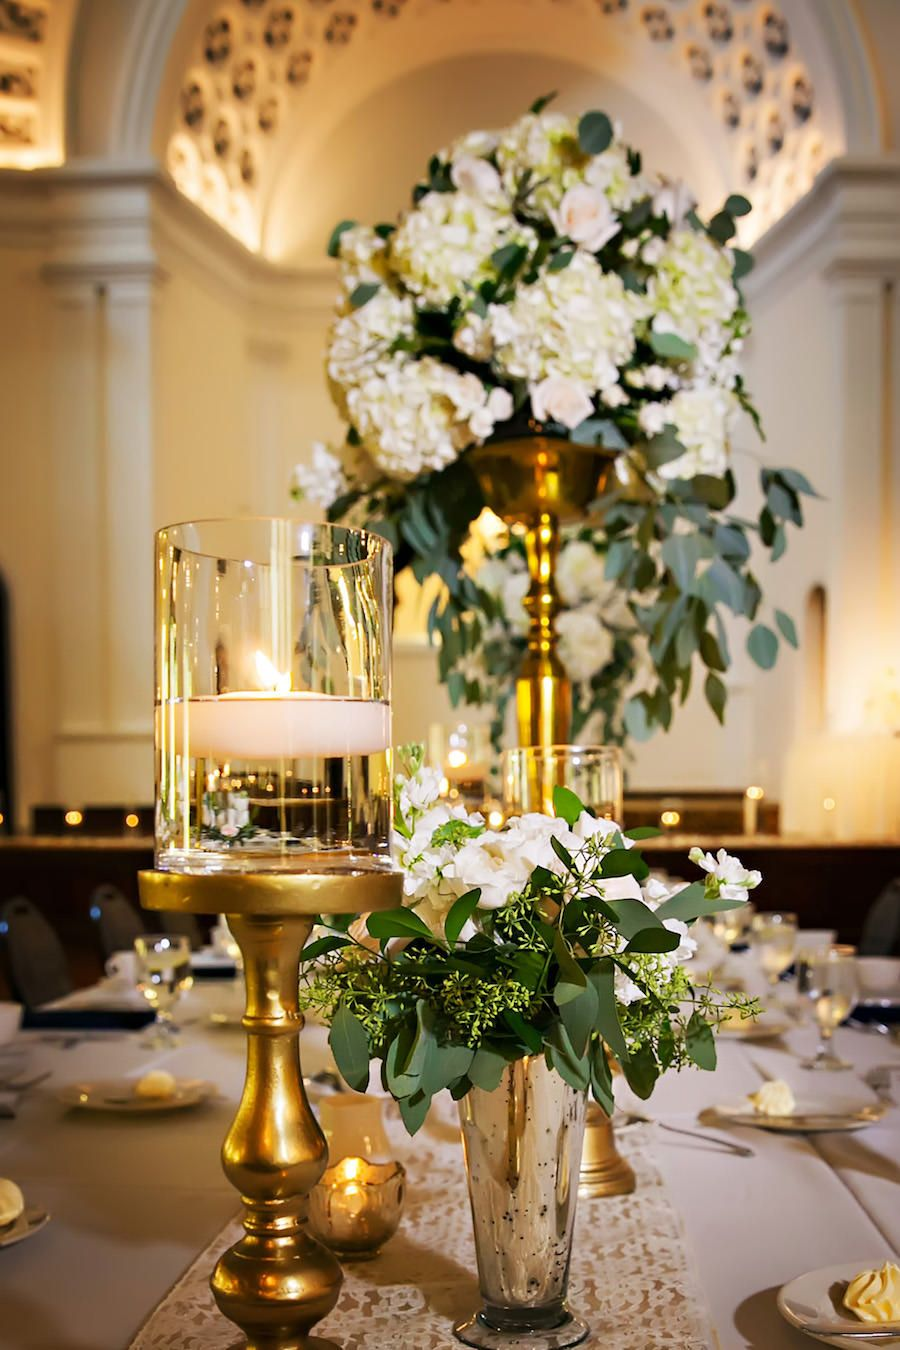 Elegant and traditional wedding reception décor with gold